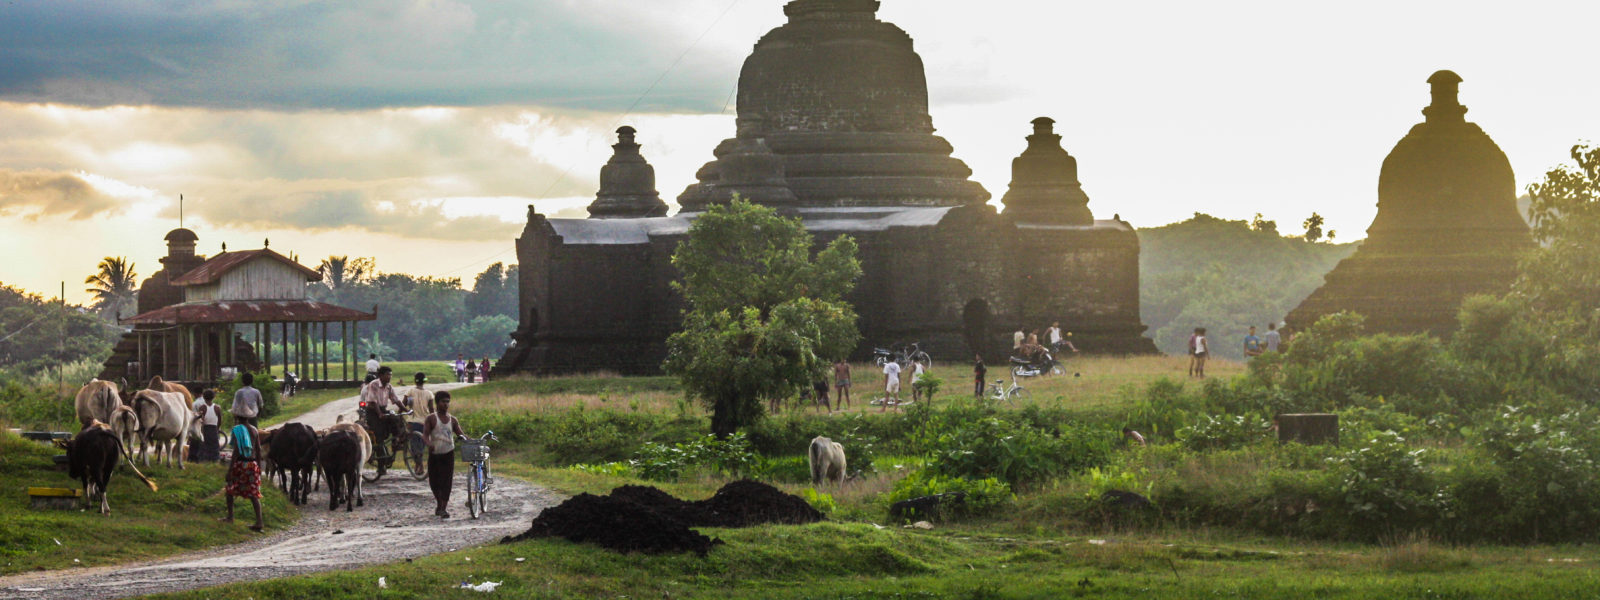 Further Up, Further In - Mrauk U - Rakhine State - Sampan Travel